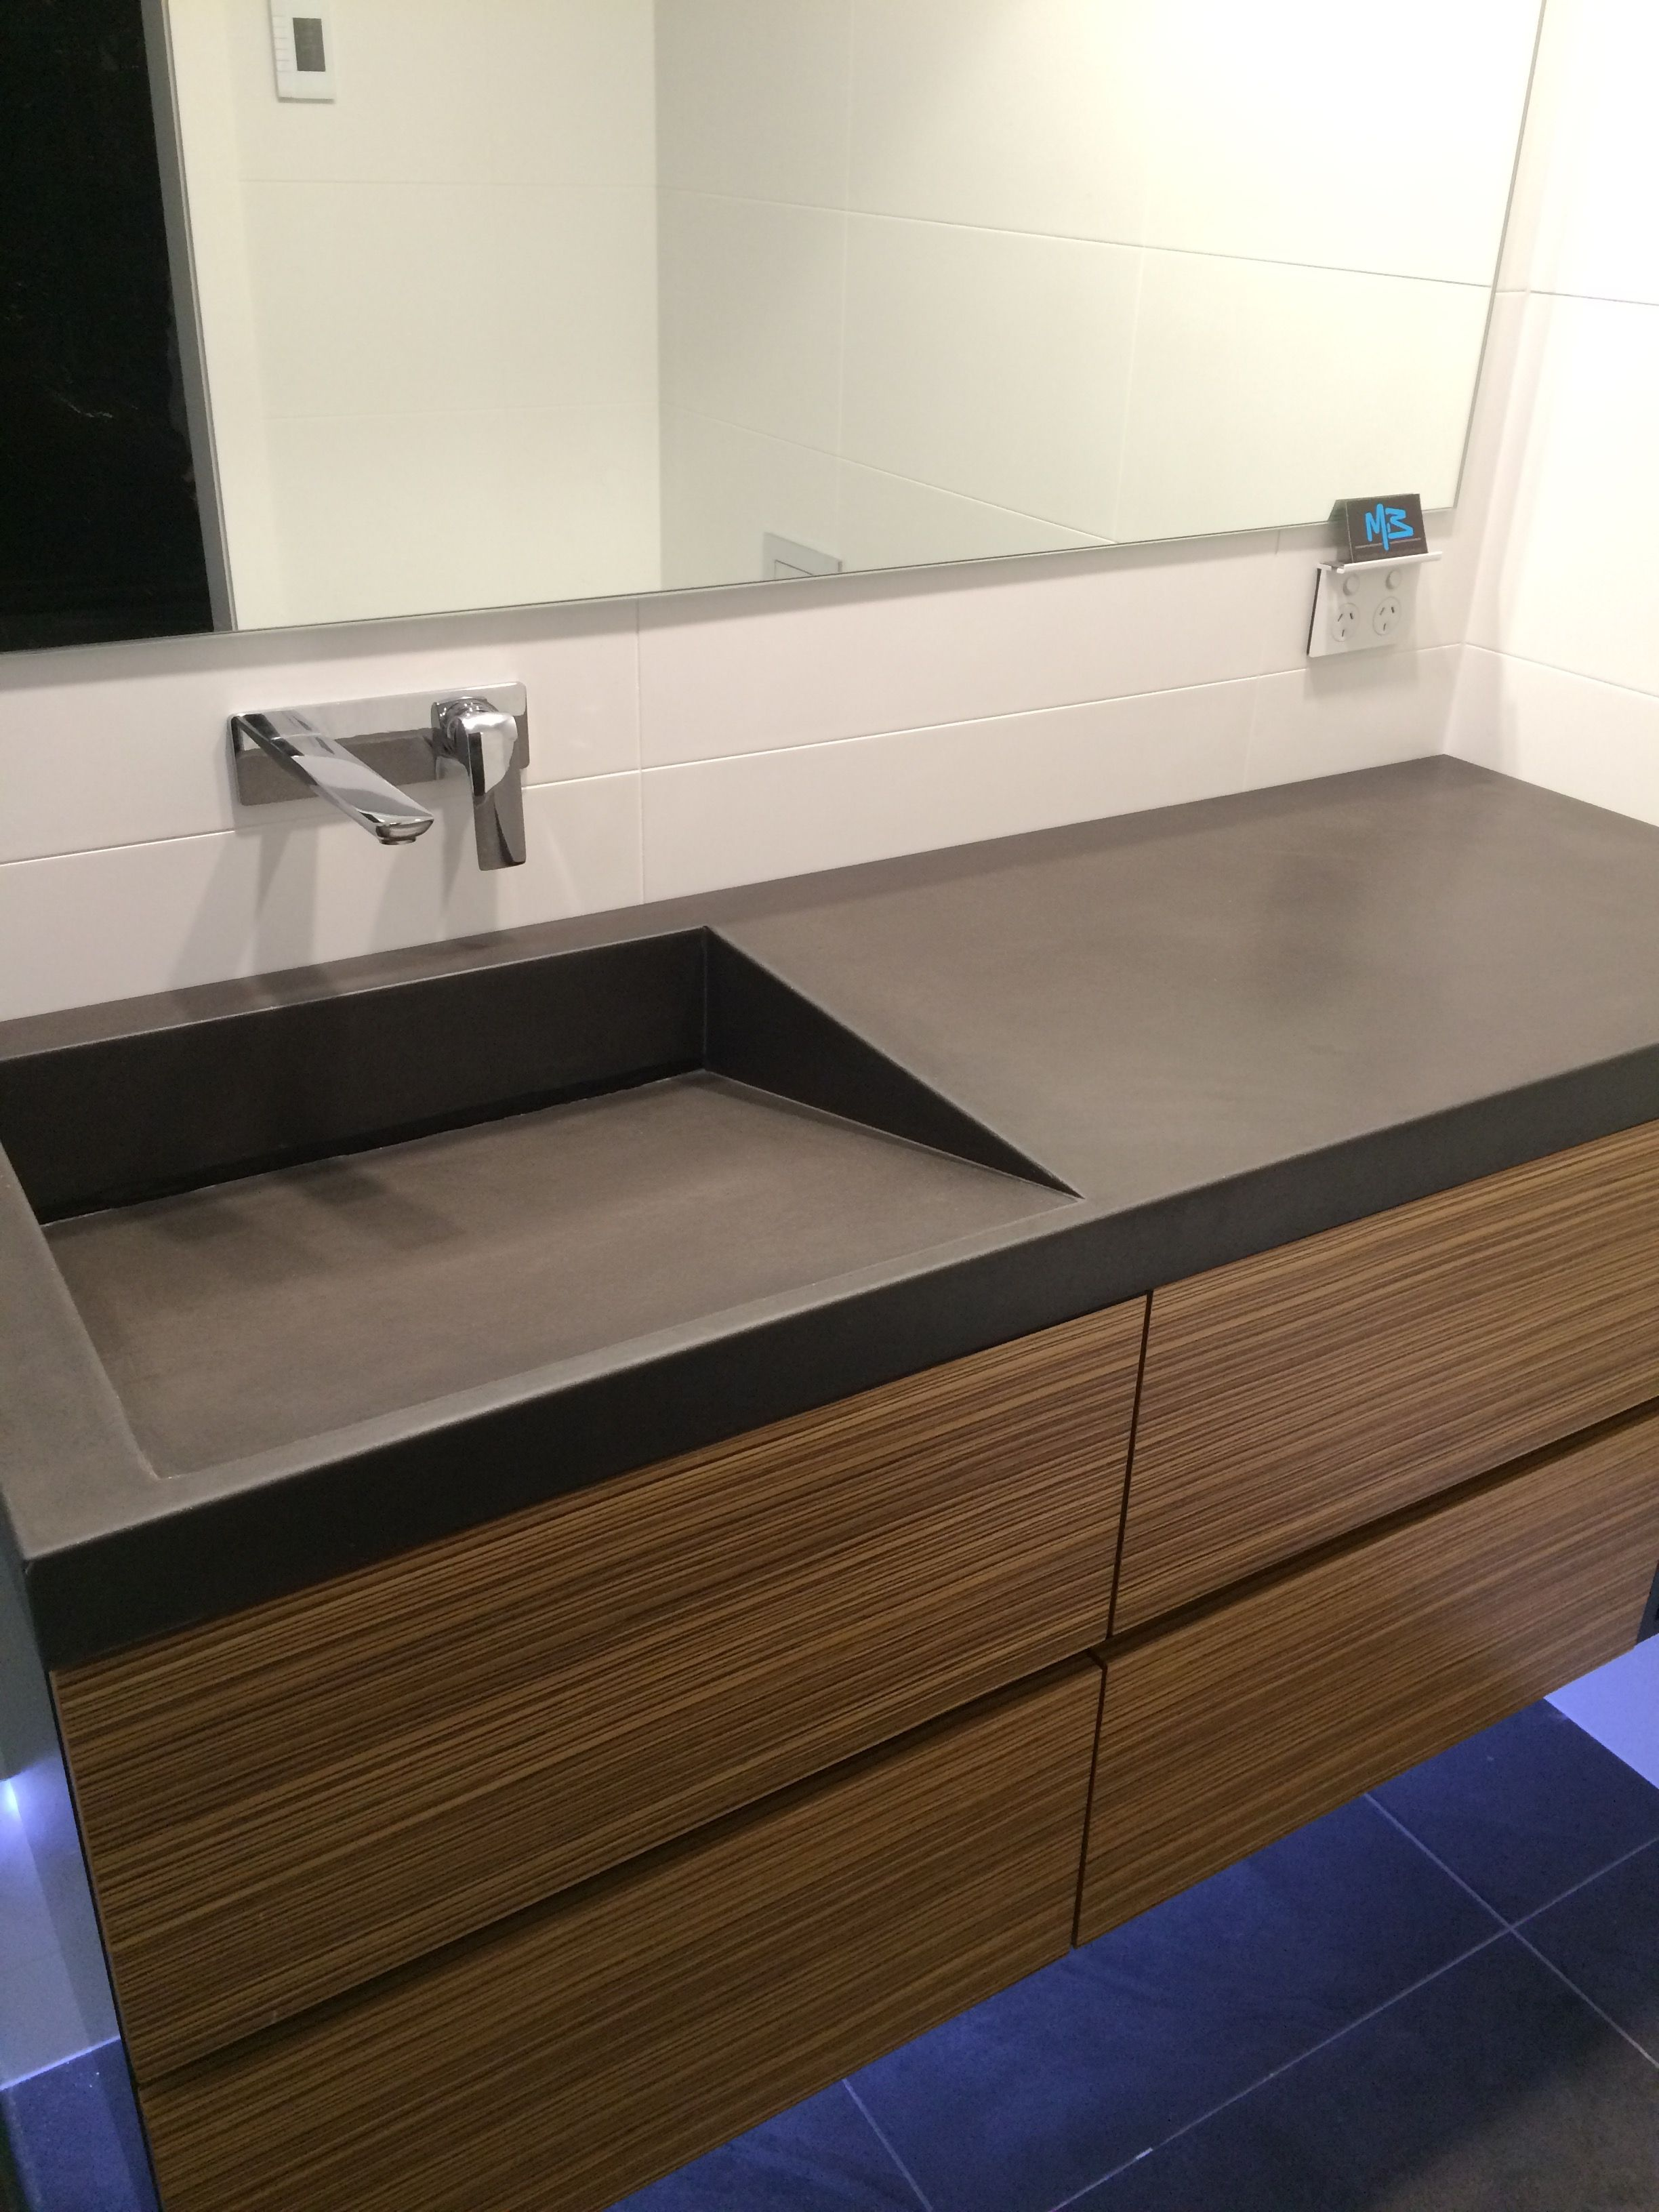 Integrated Sinks For Bathroom Polished Concrete Vanity Top With Integrated Sink By